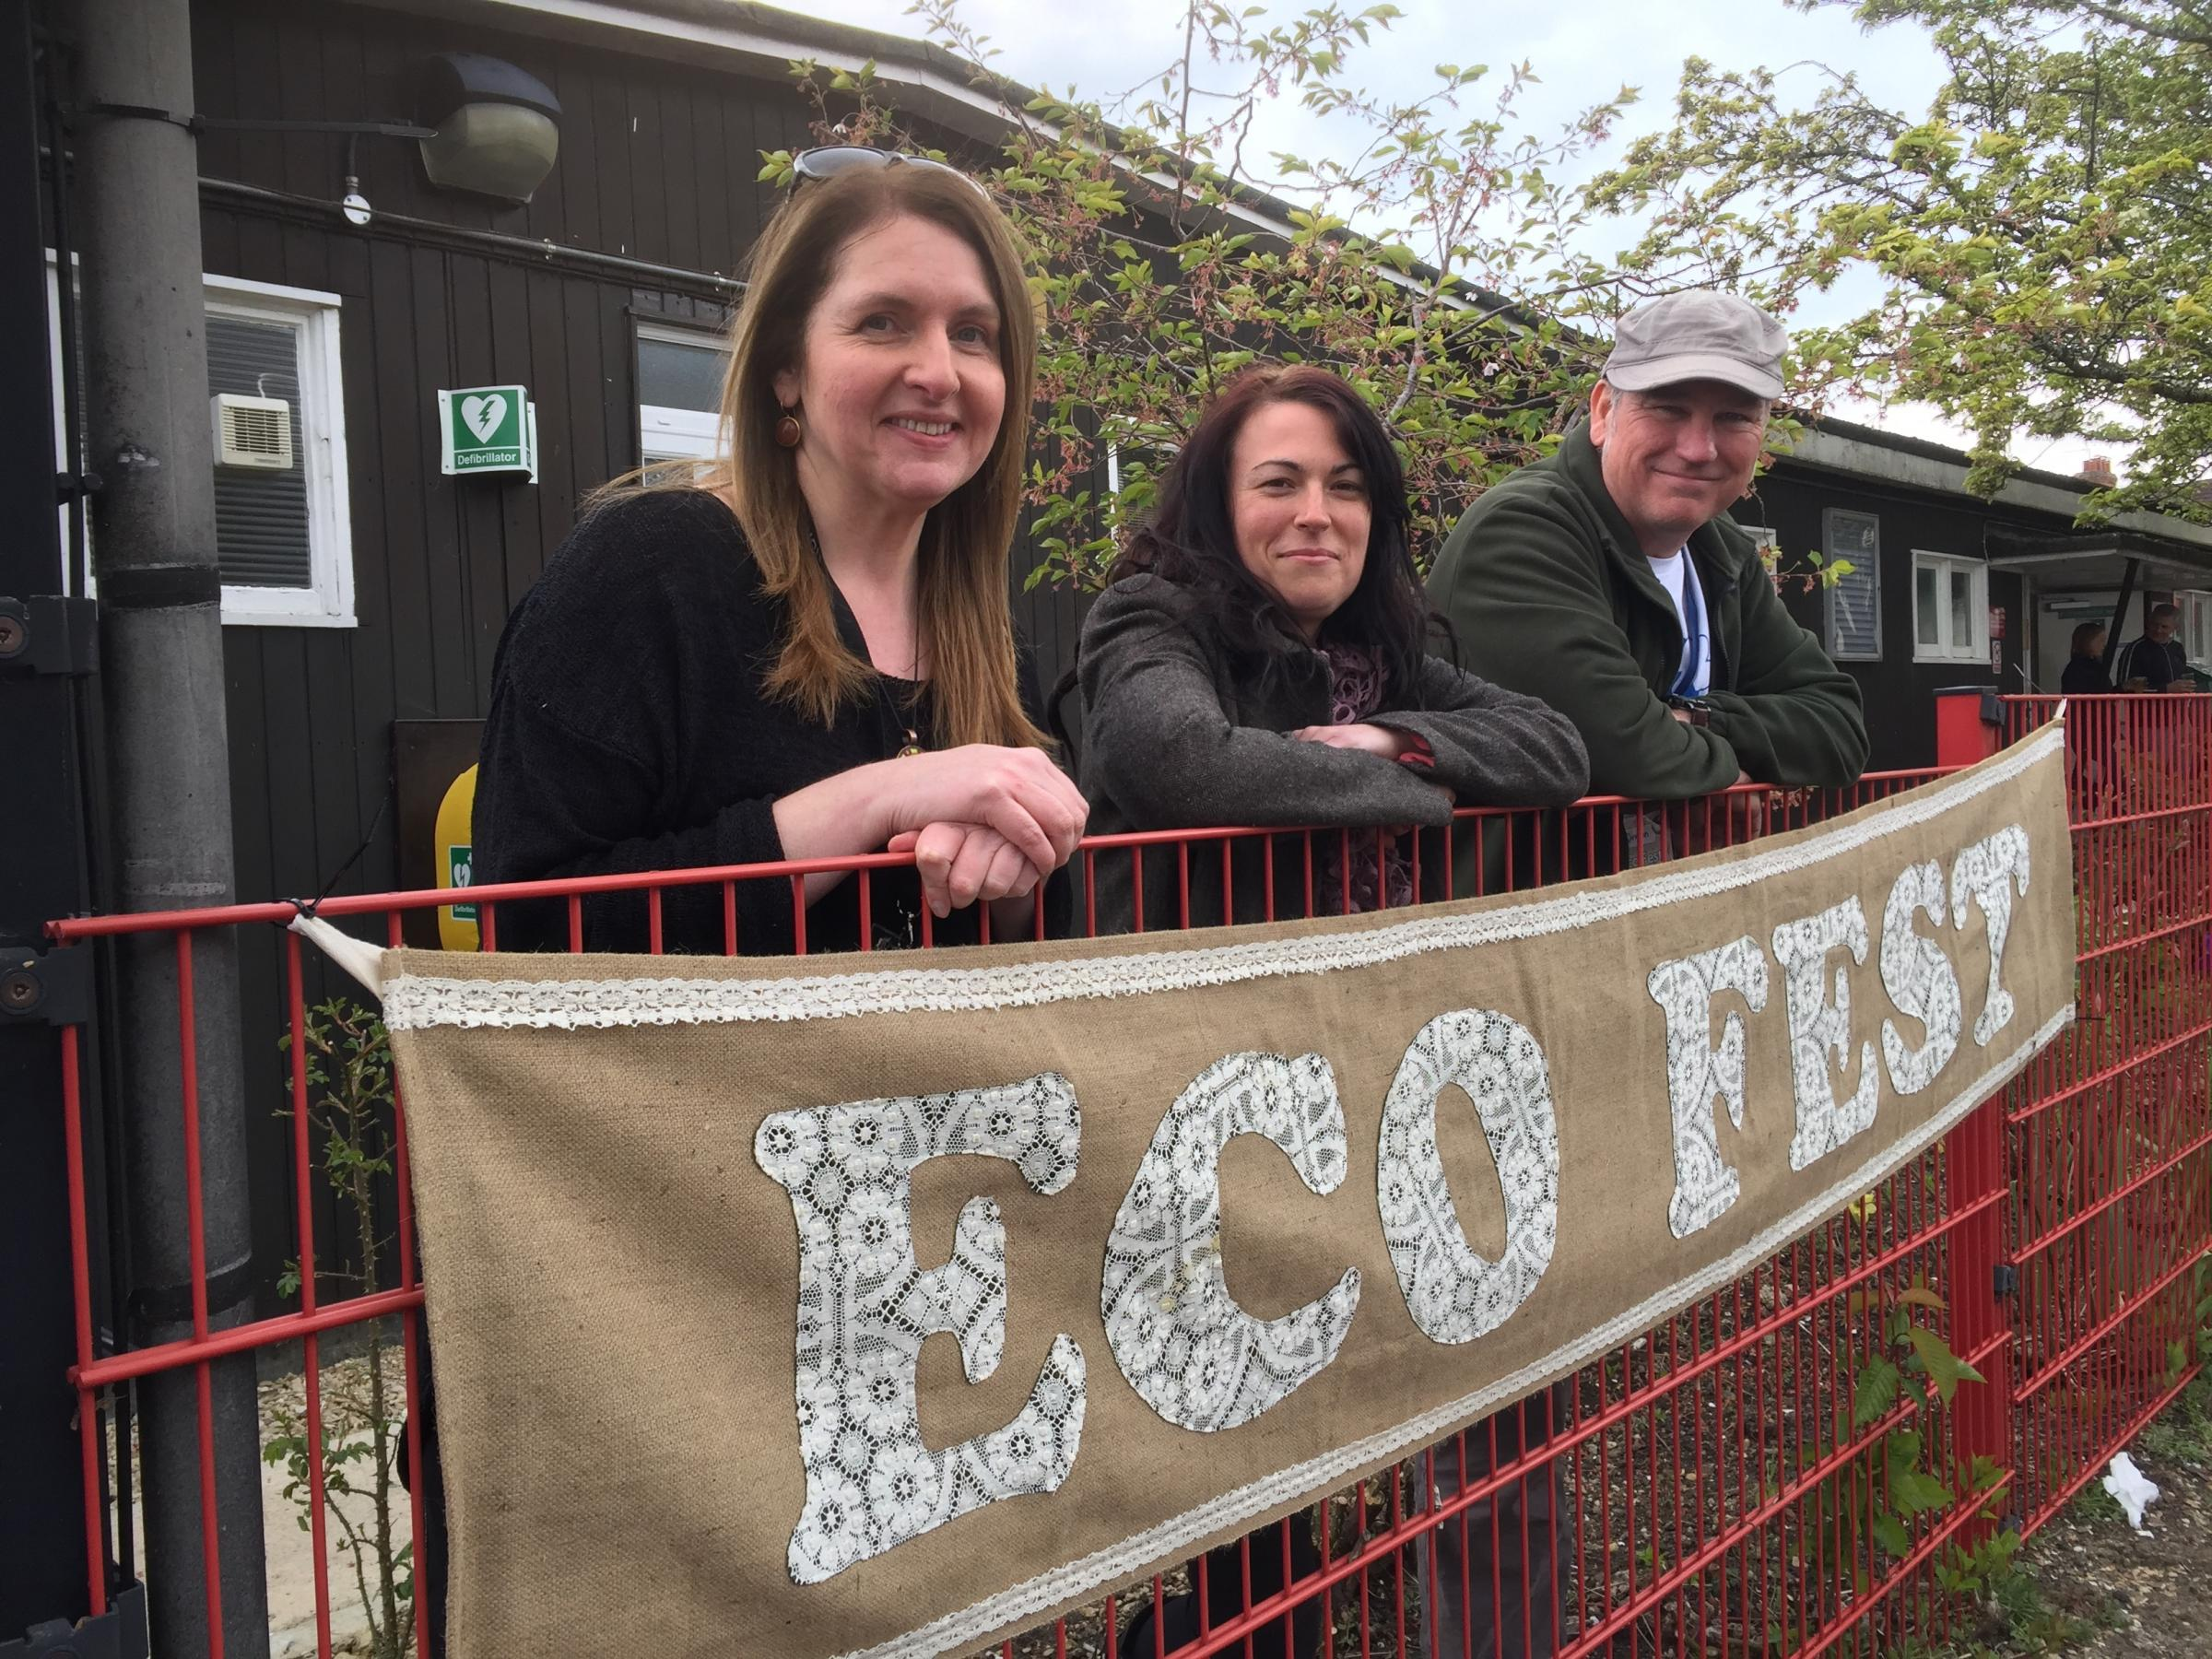 Eco Fest returns with lots of little ways to help save the planet